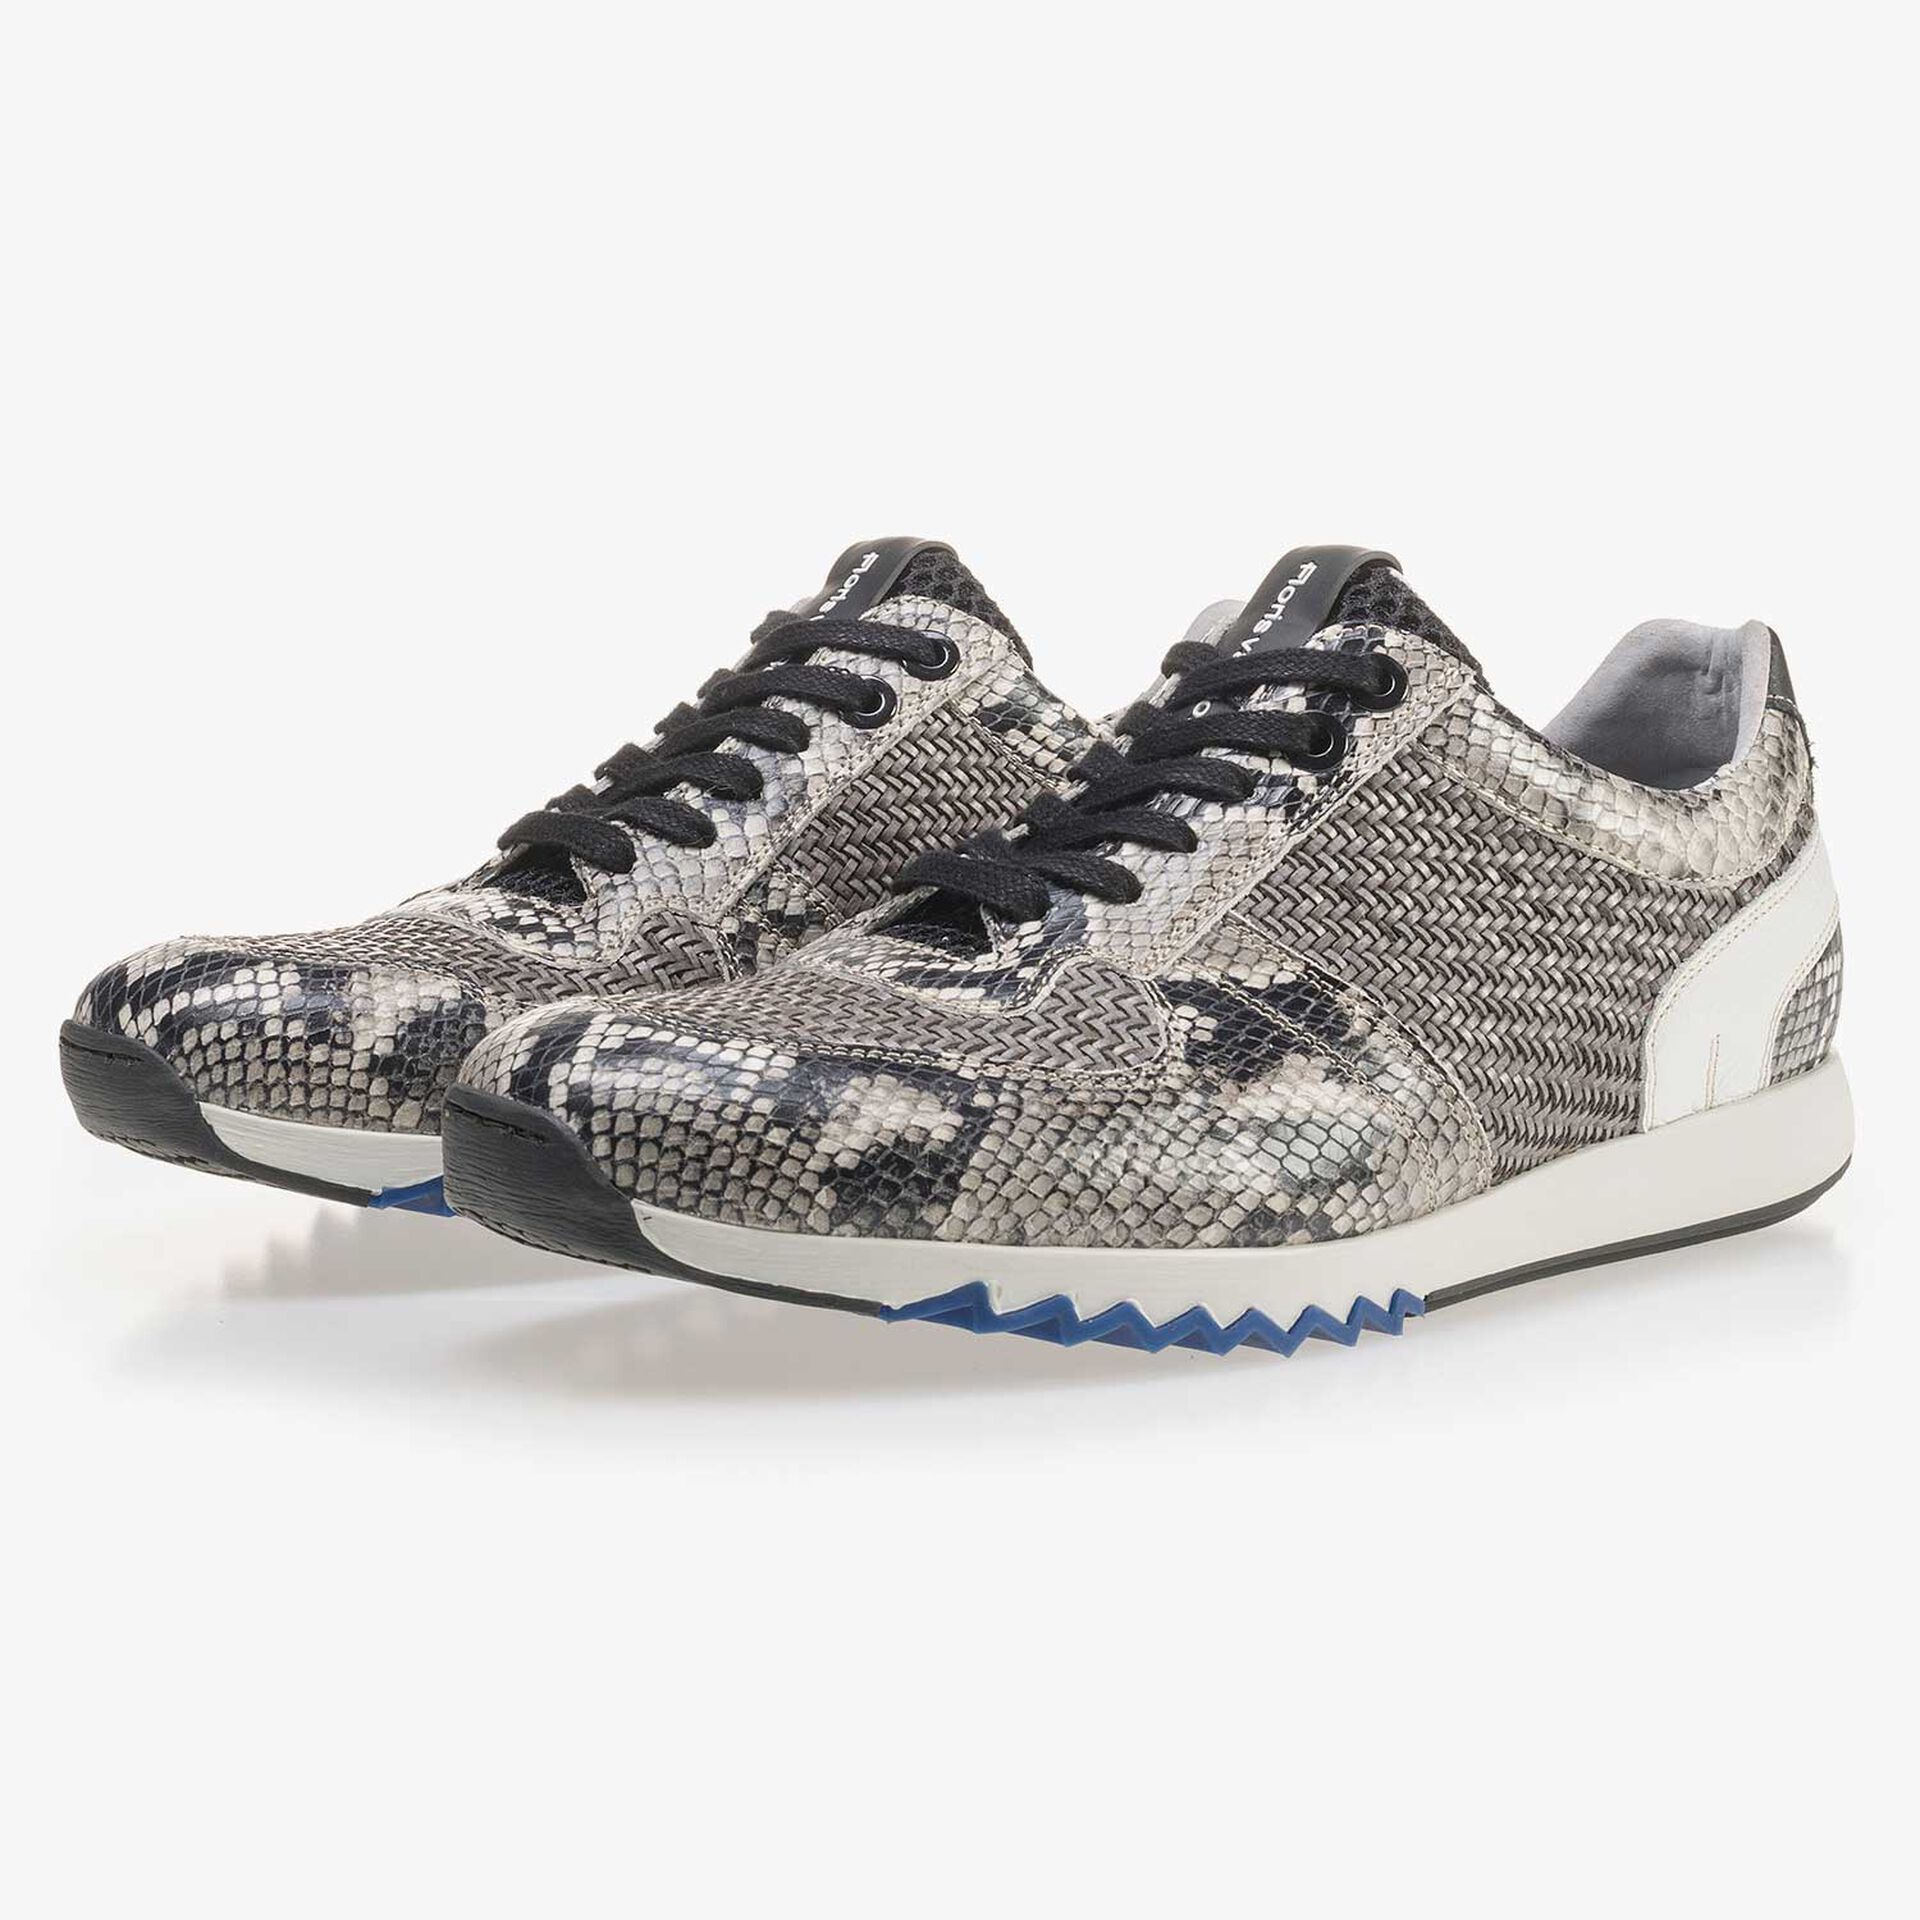 Grey leather sneaker with a snake print